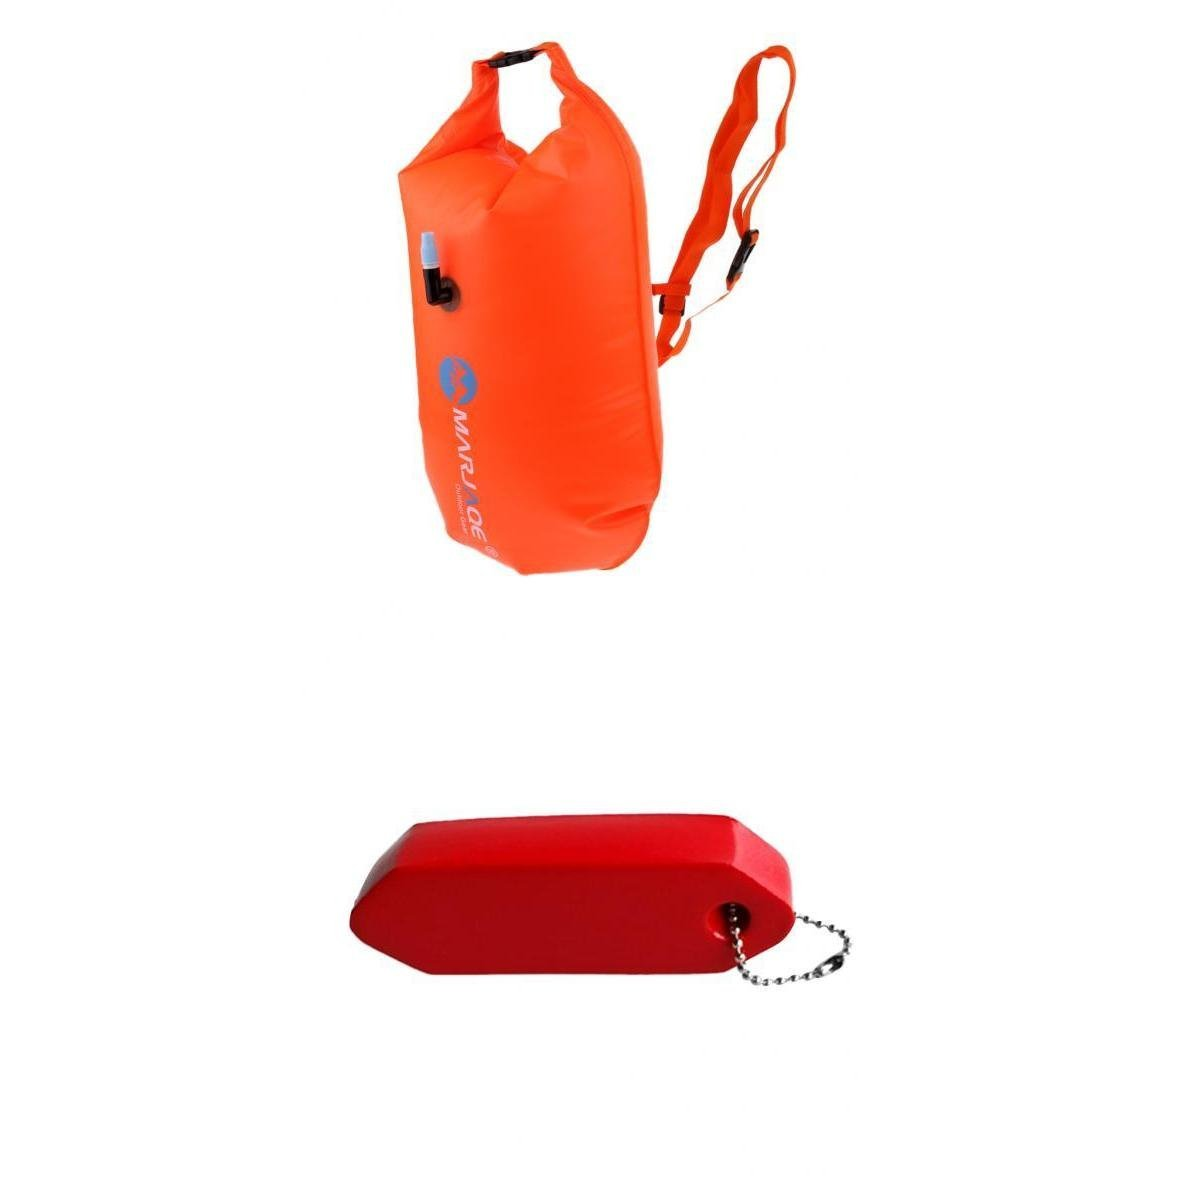 MagiDeal High Visibility Inflatable Dry Bag Water Swim Float Tow Bag Keychain Keyring